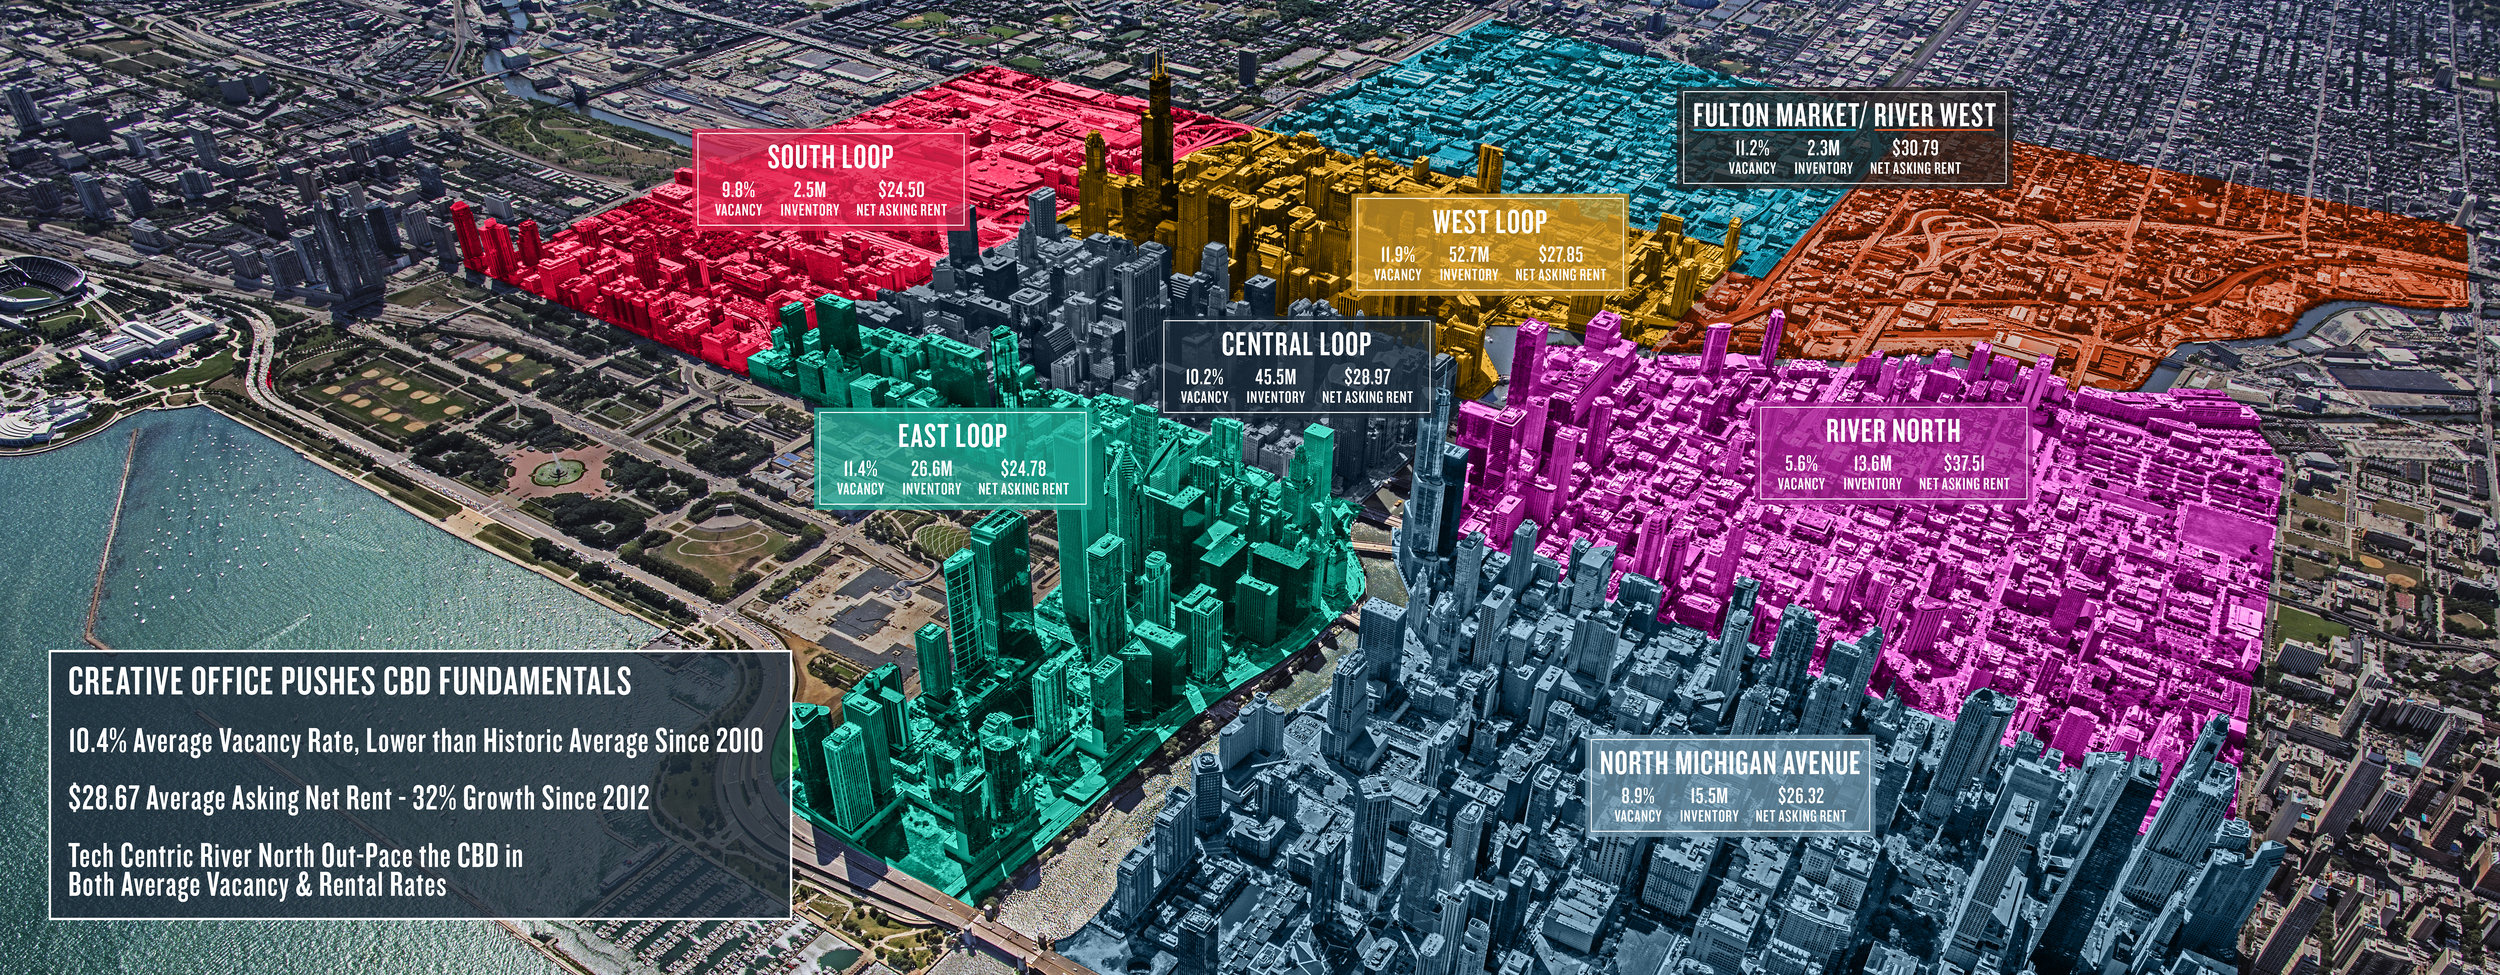 Chicago Illinois Rates Aerial Map.jpg